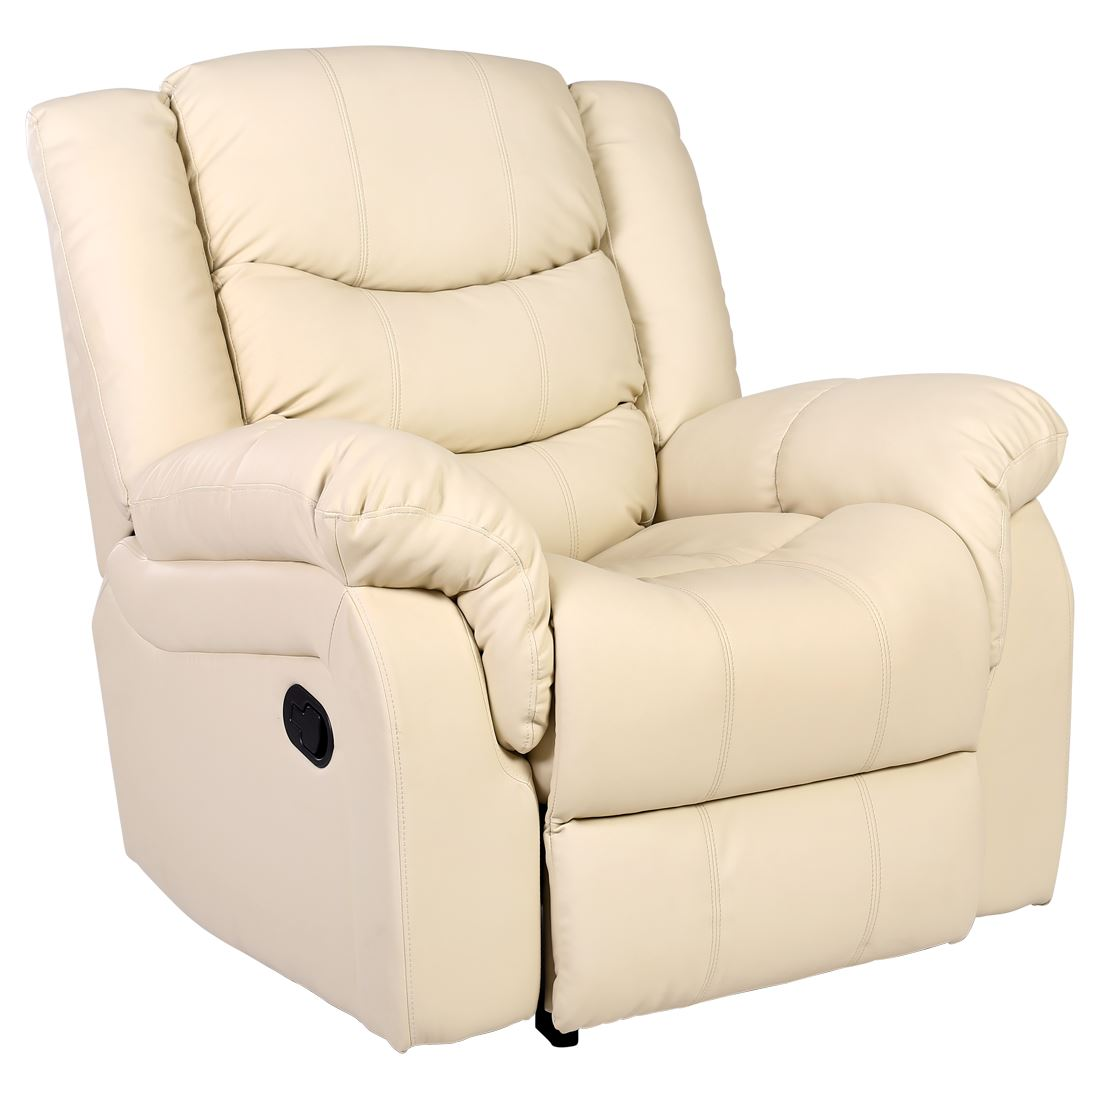 Cream Chairs Seattle Cream Leather Recliner Armchair Sofa Home Lounge